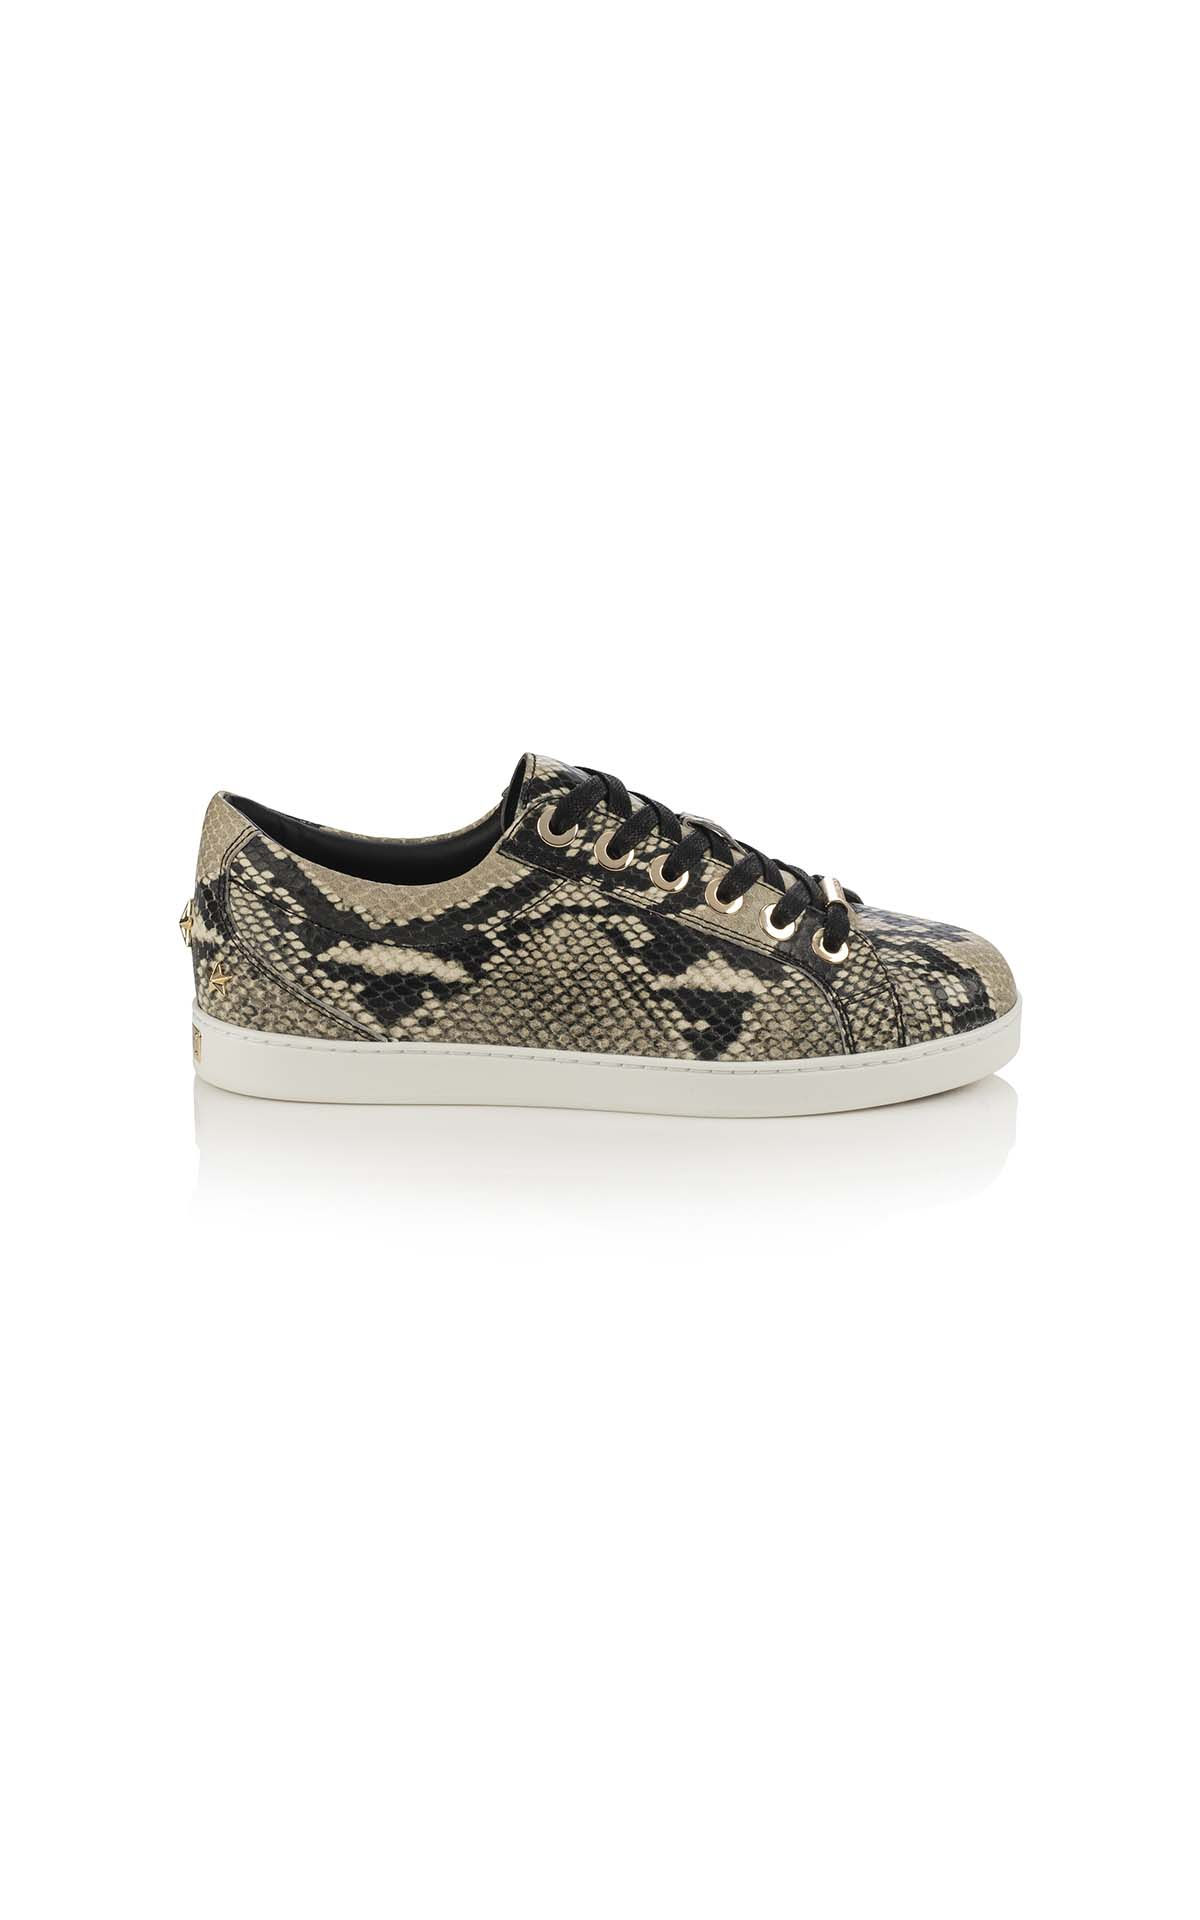 Jimmy Choo Cash F snake printed leather natural at The Bicester Village Shopping Collection